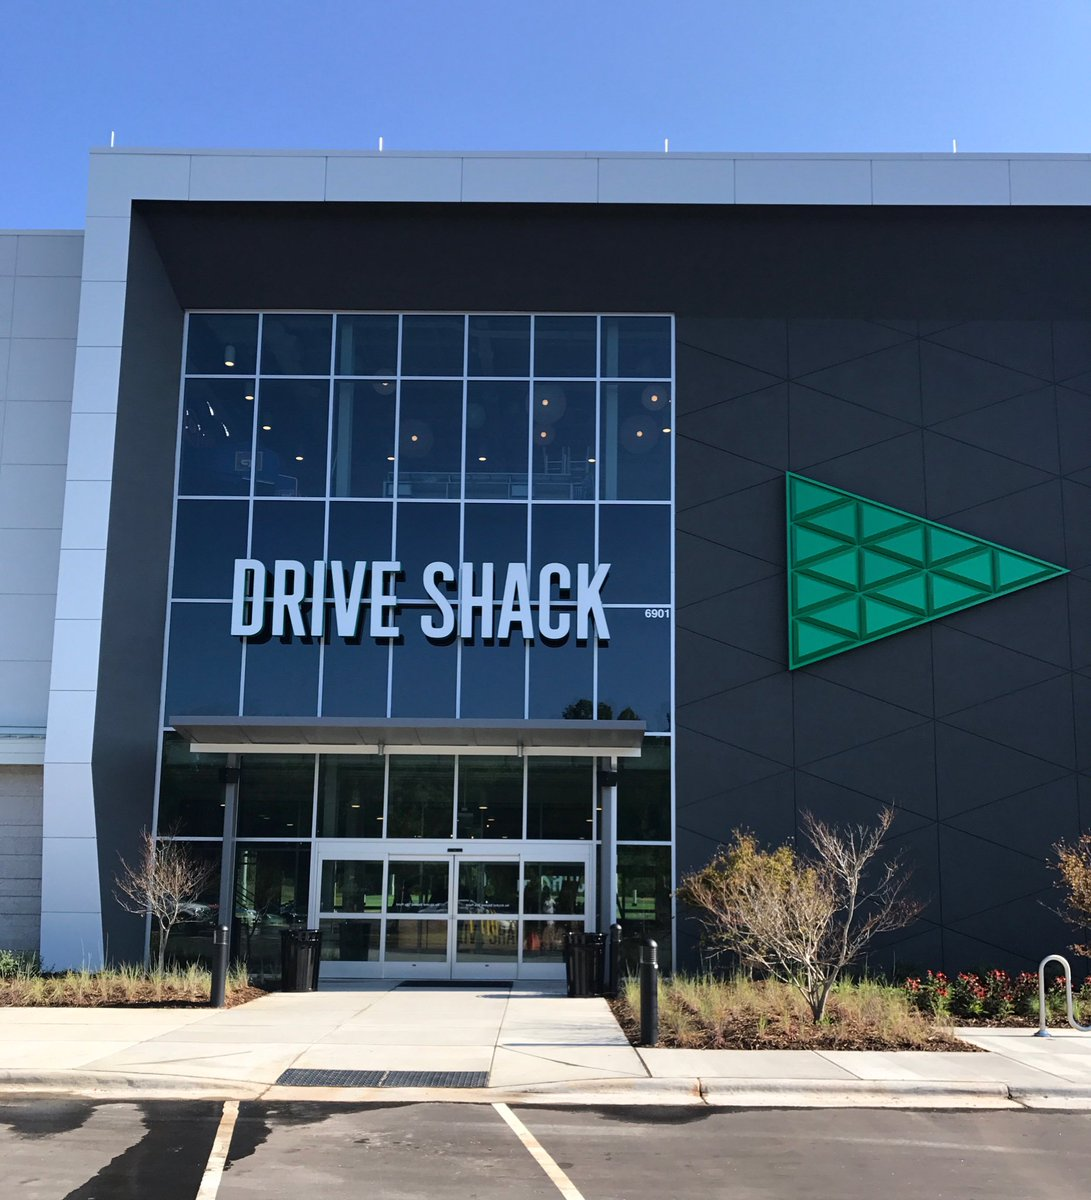 Welcome to Raleigh @driveshack ! Hiring 400 people. @NAICarolantic glad to be a part of the land acquisition! #golfandbusiness @Brenter37 @NAIGlobal https://t.co/8vY9VmMUO9